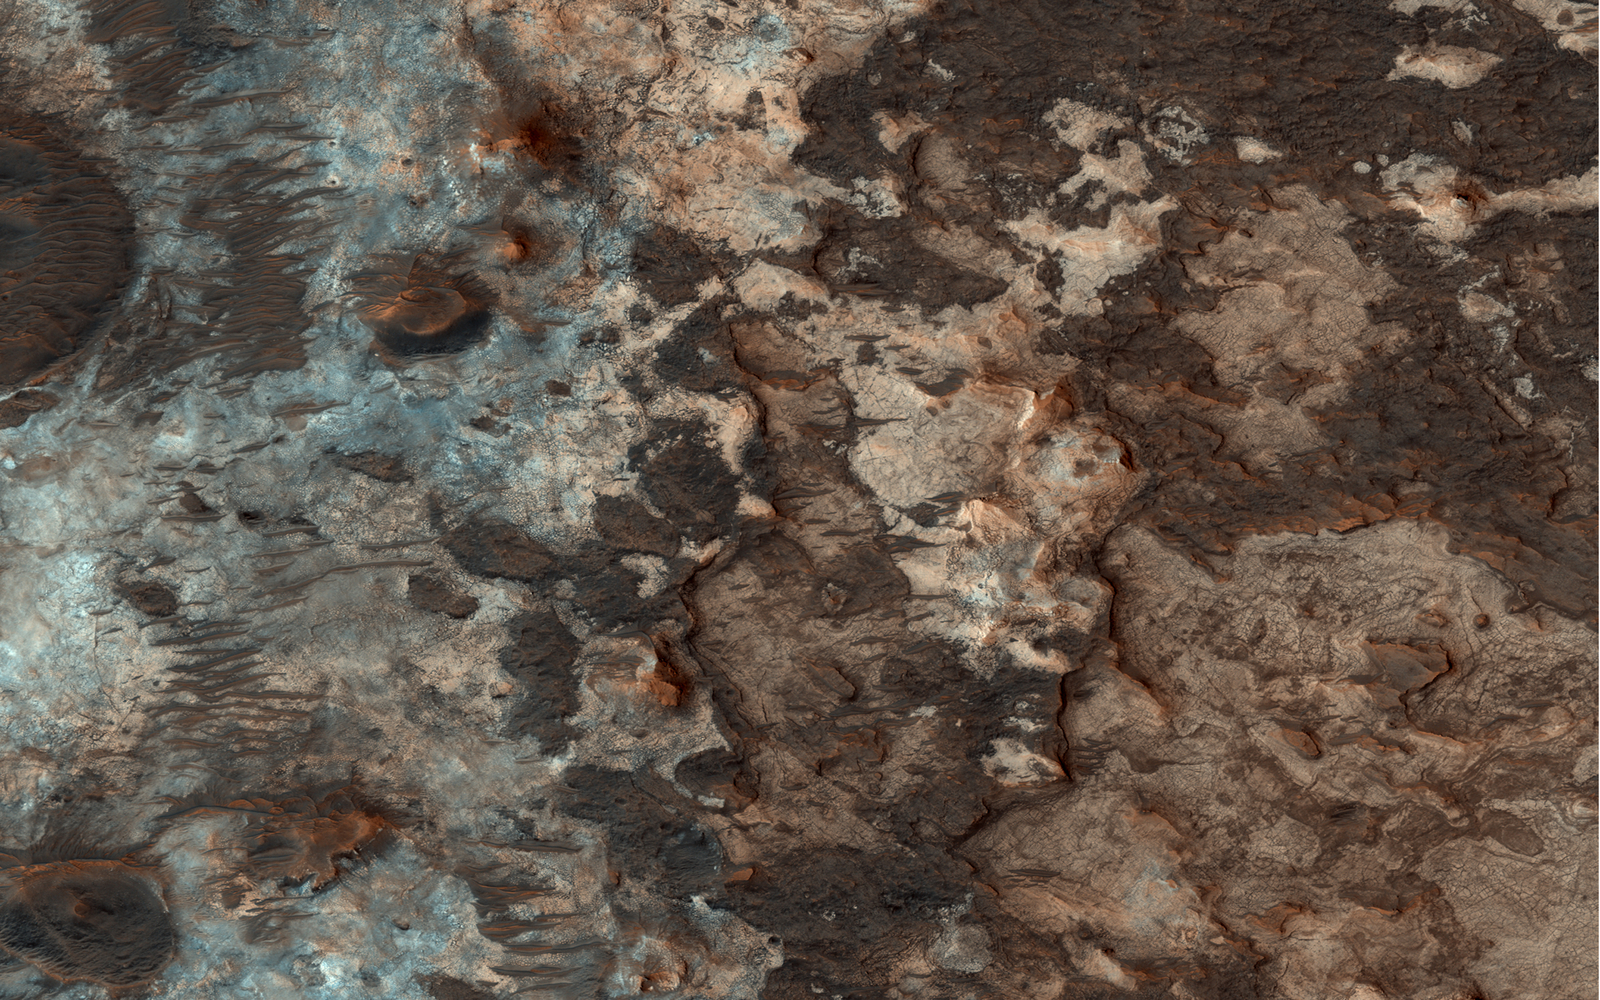 "Mawrth Vallis has a rich mineral diversity, including clay minerals that formed by the chemical alteration of rocks or loose ""regolith"" (soil) by water."